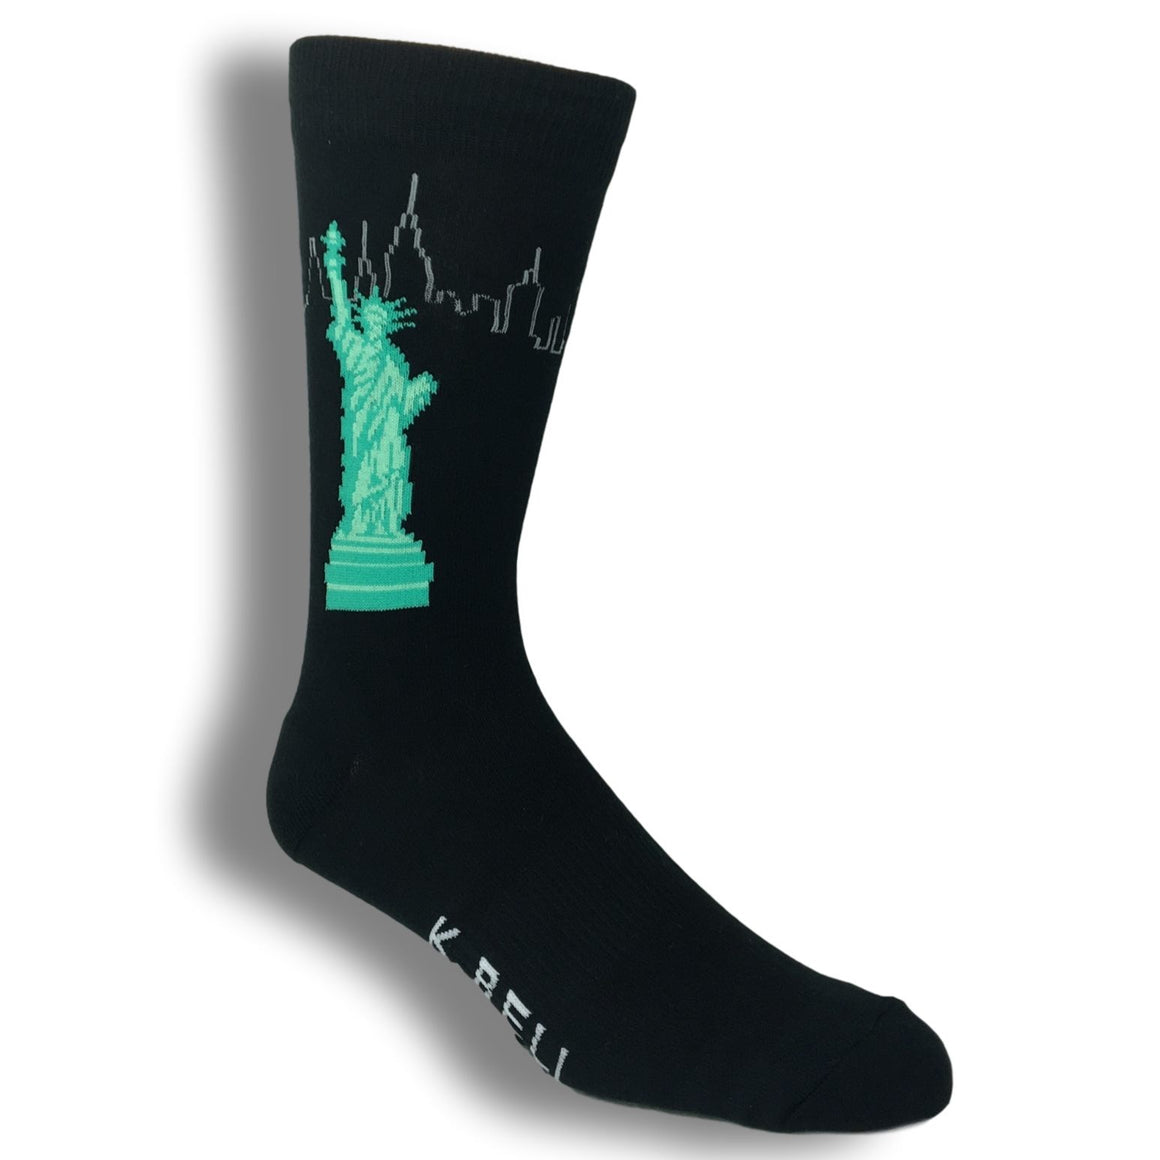 Statue Of Liberty Socks - Made In America